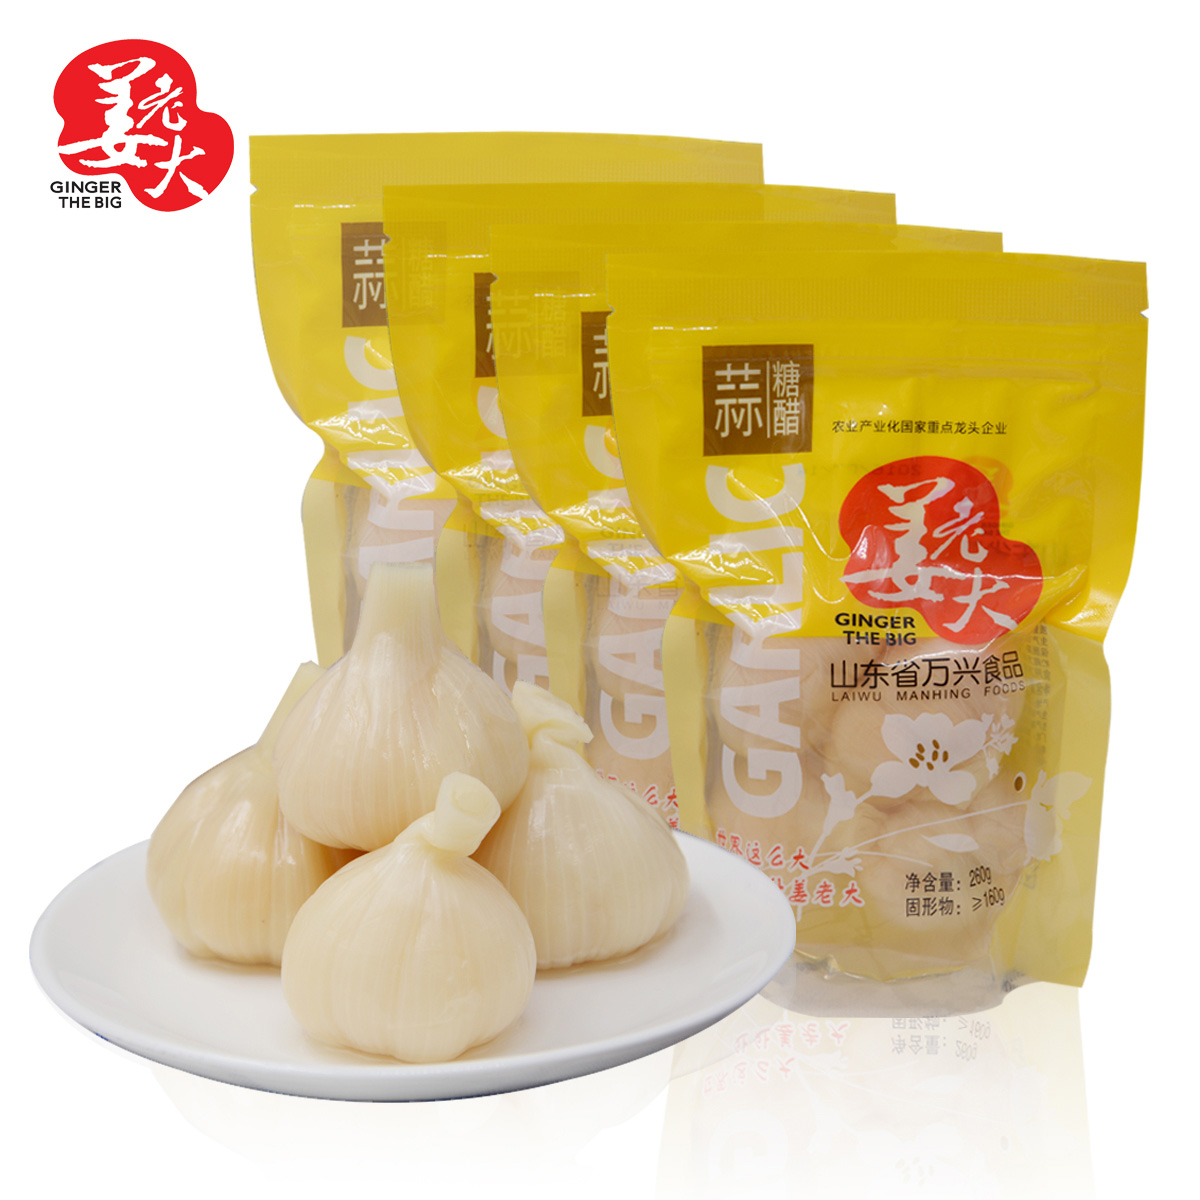 Boss ginger marinated sweet and sour garlic sweet and sour garlic white garlic garlic garlic garlic bulb garlic vinegar 260g * 4 bags